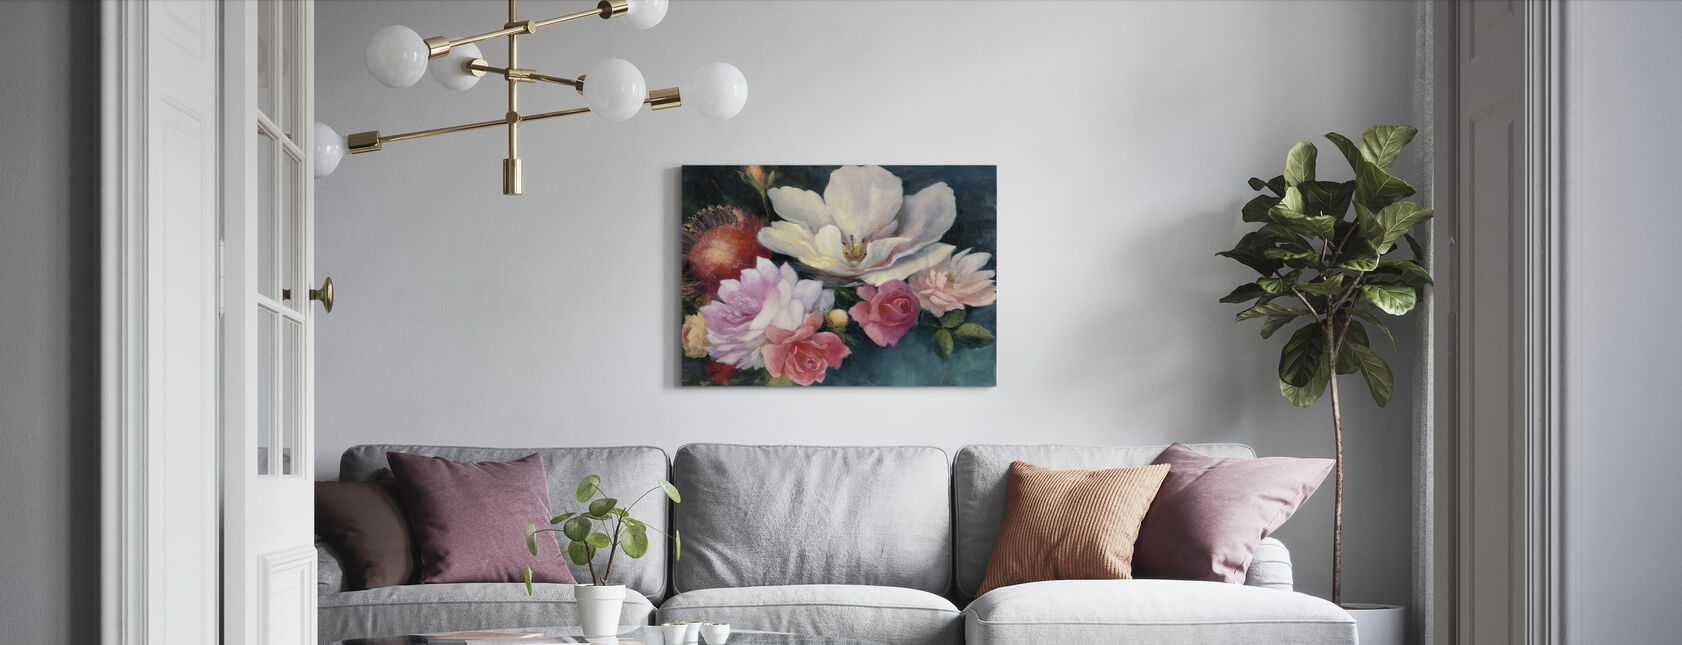 Flemish Fantasy - Canvas print - Living Room